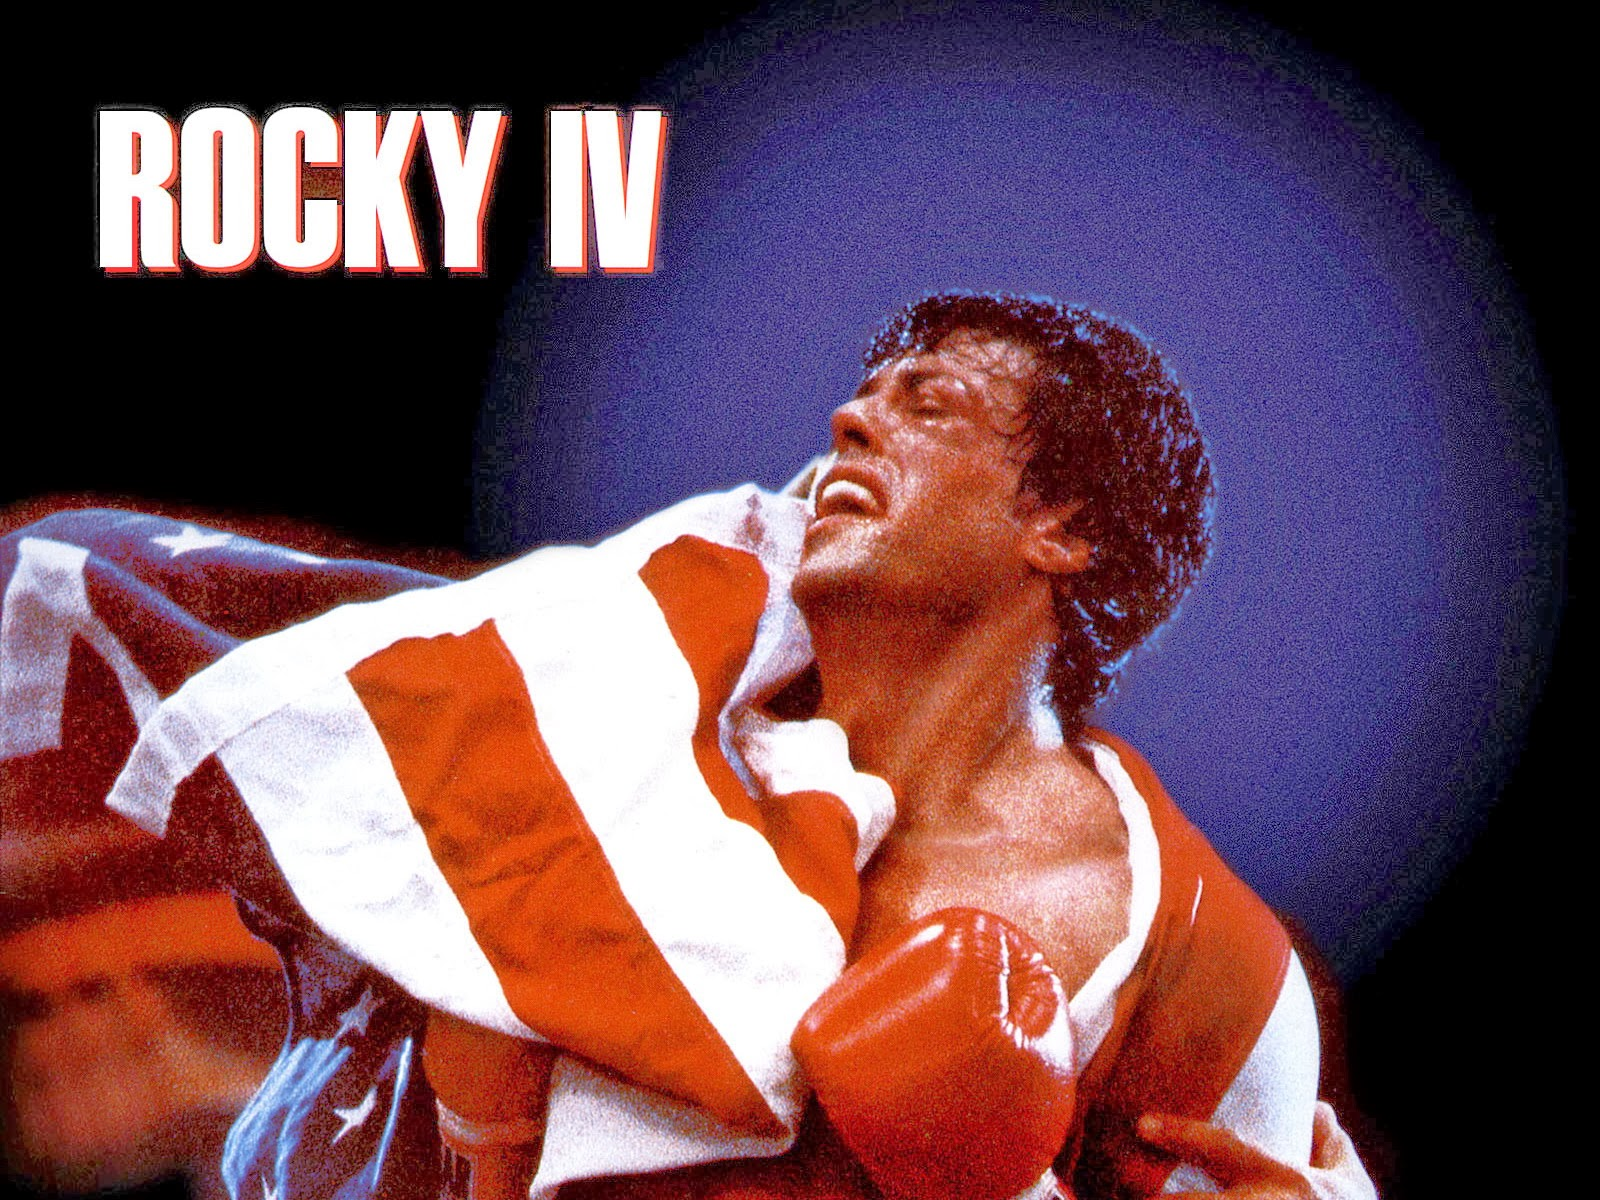 Rocky 4 - Starring Sylvester Stallone, Dolph Lundgren, Brigitte Nielsen and Tony Burton - Released in 1985